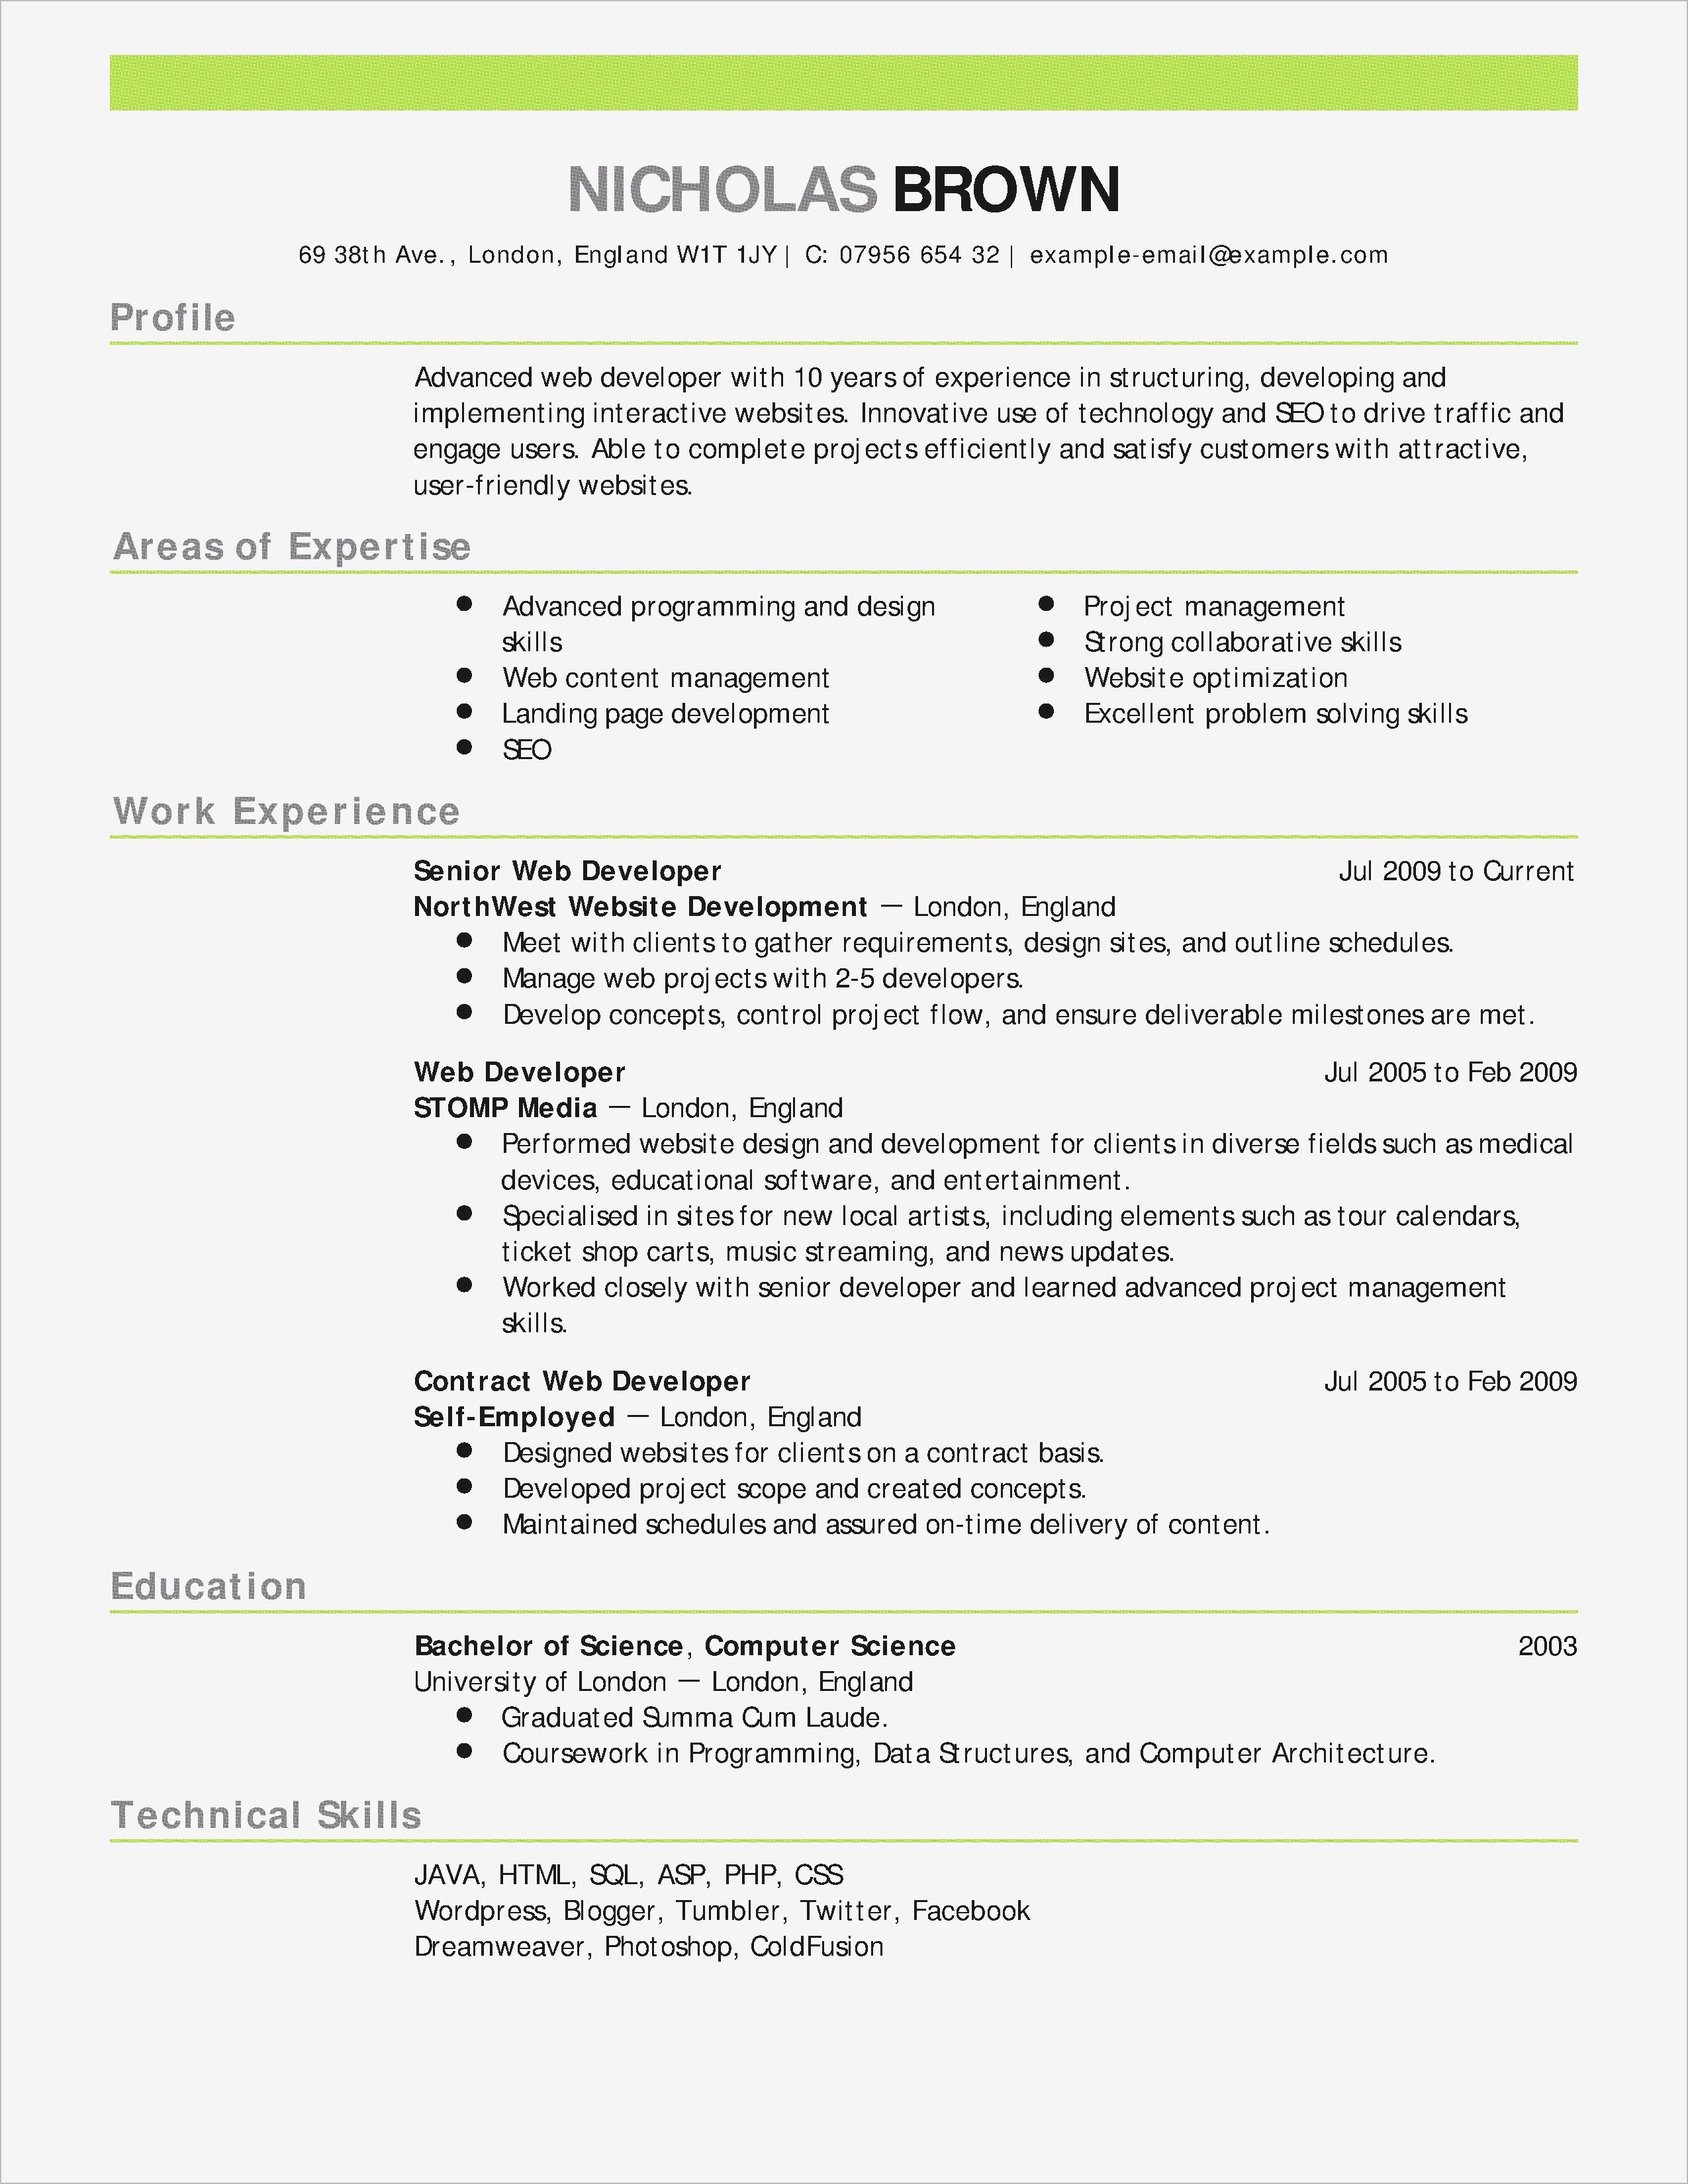 Cfo Cover Letter Template - Resume Writing Pany Beautiful Elegant Cover Letter Writing